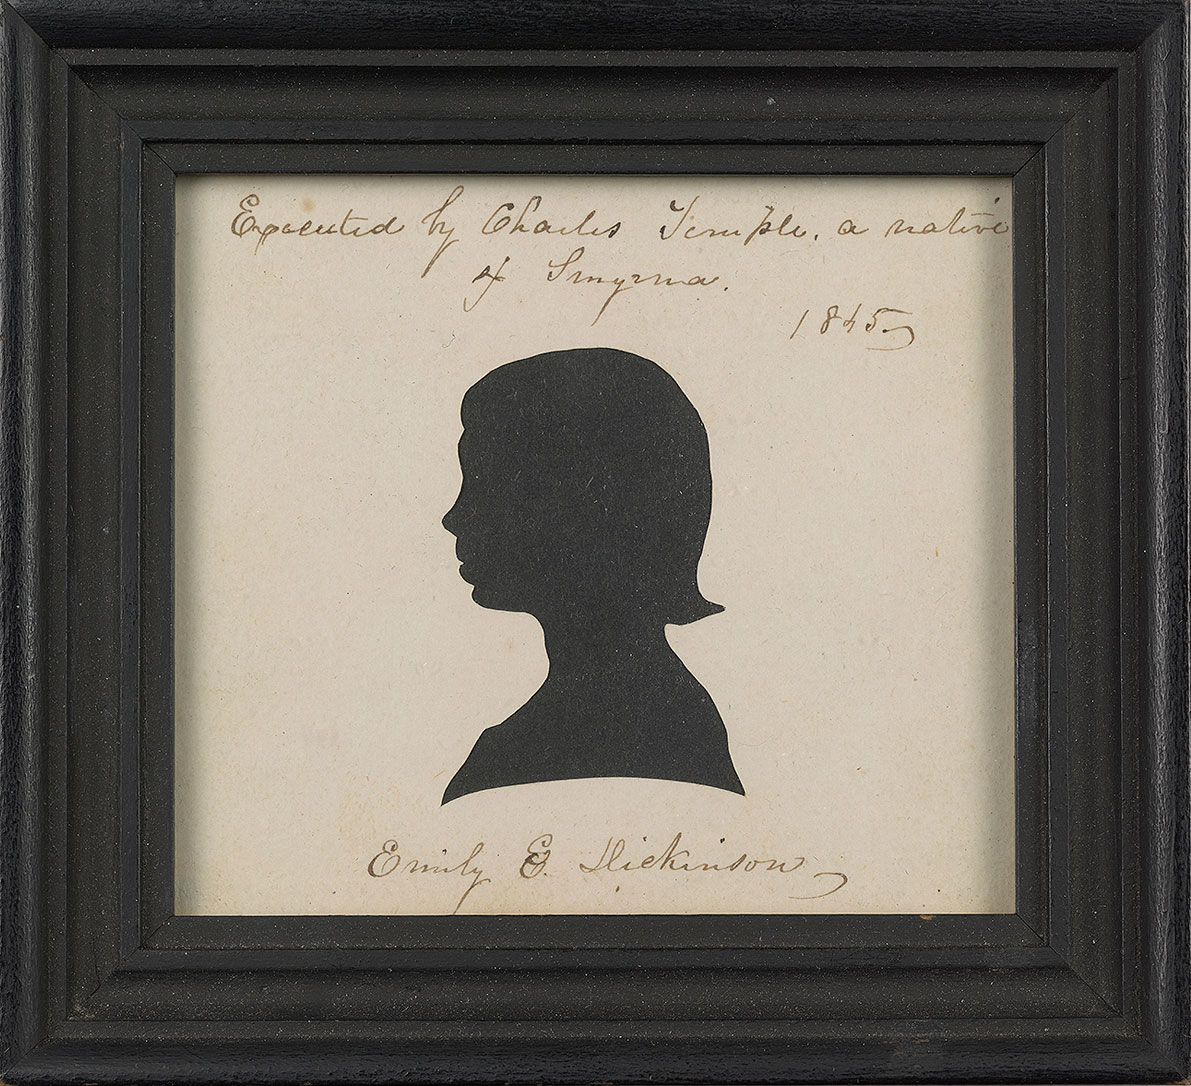 Emily Dickinson, Cut paper silhouette